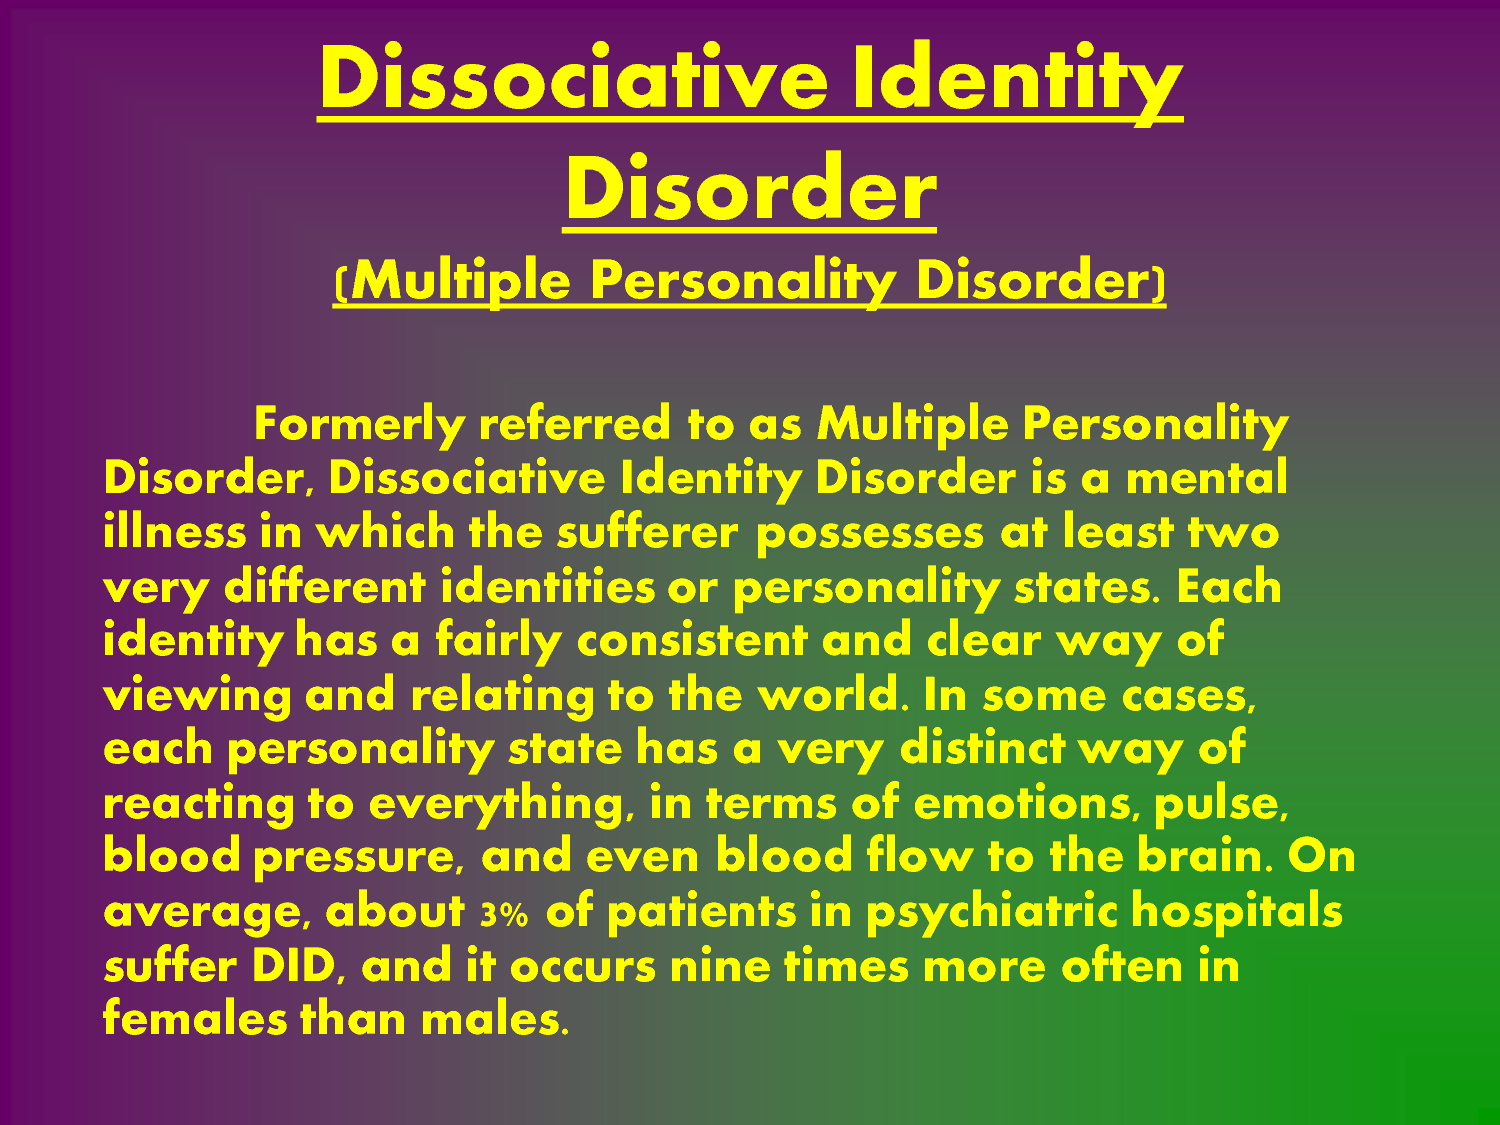 multiple personality disorder in identity essay Dissociative identity disorder that manifest as multiple personalities brought also suffer from borderline personality disorder.